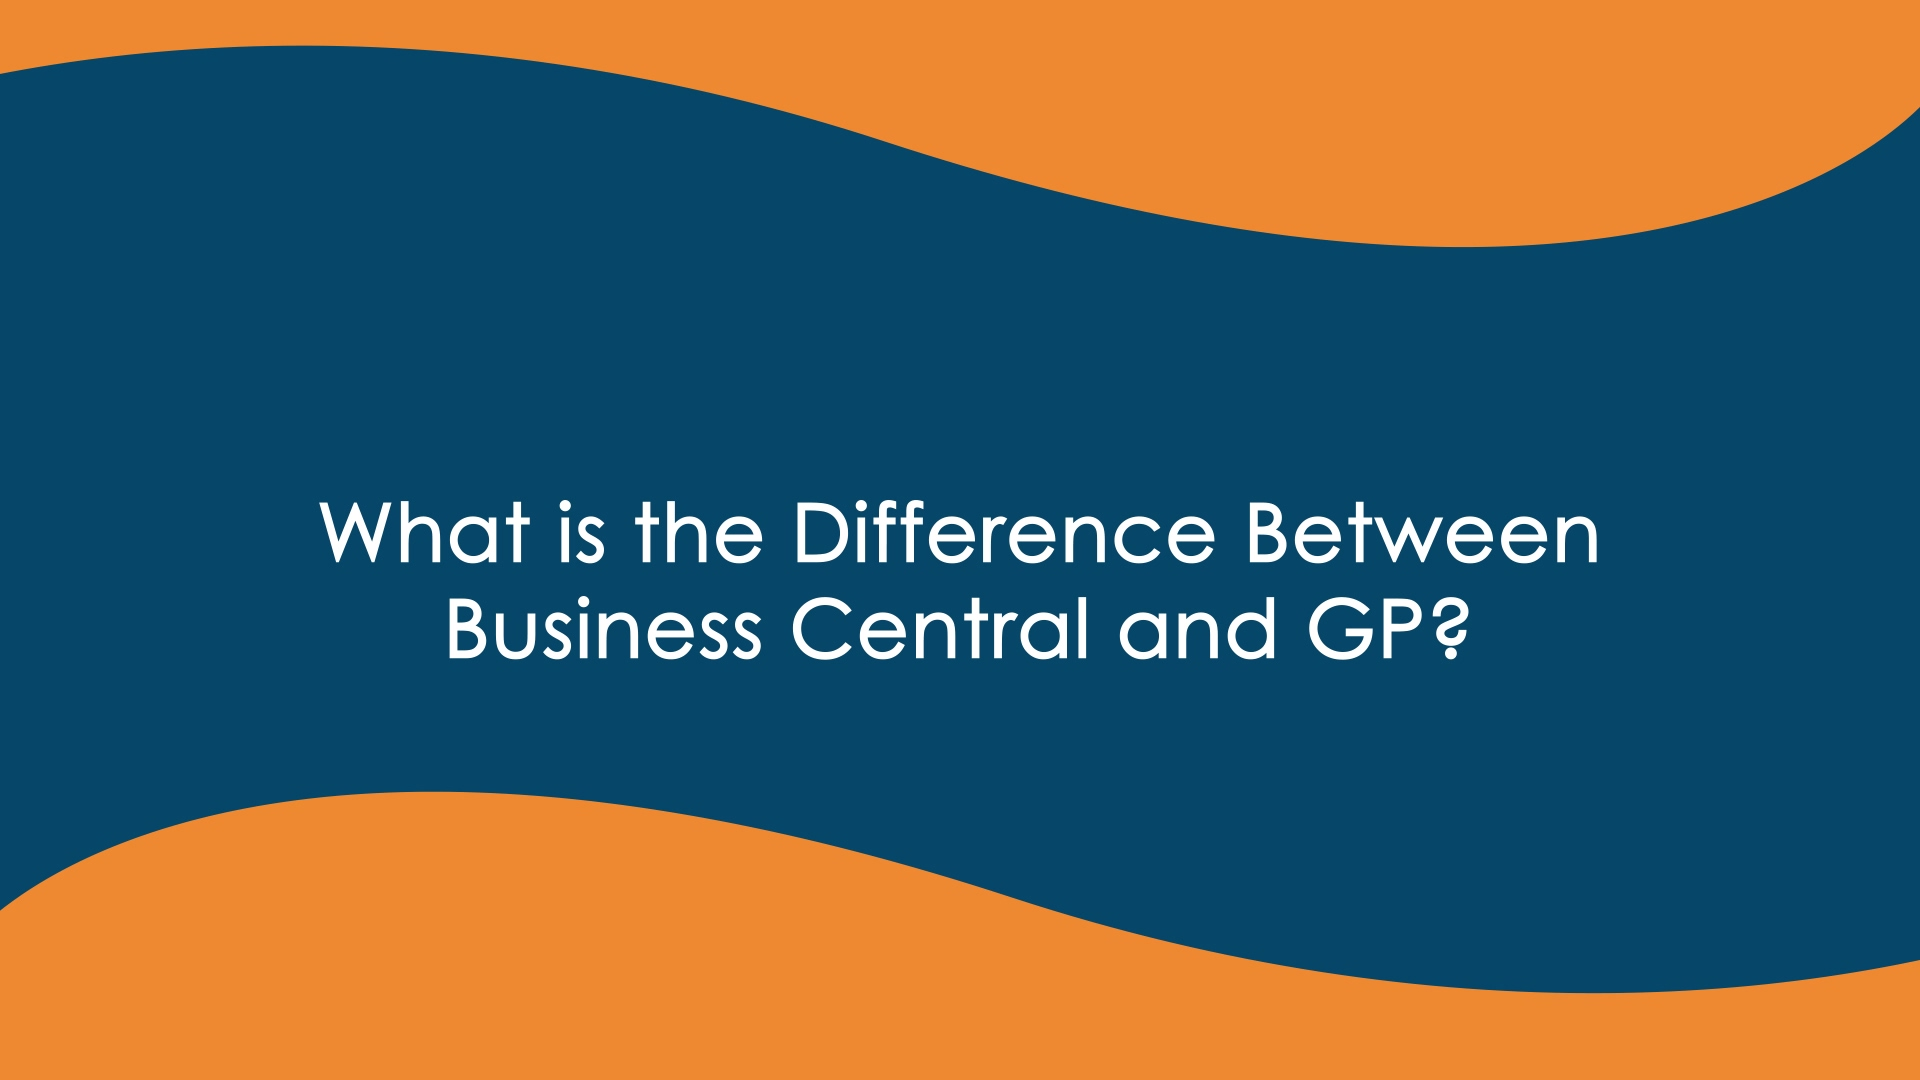 Business Central vs GP - Final